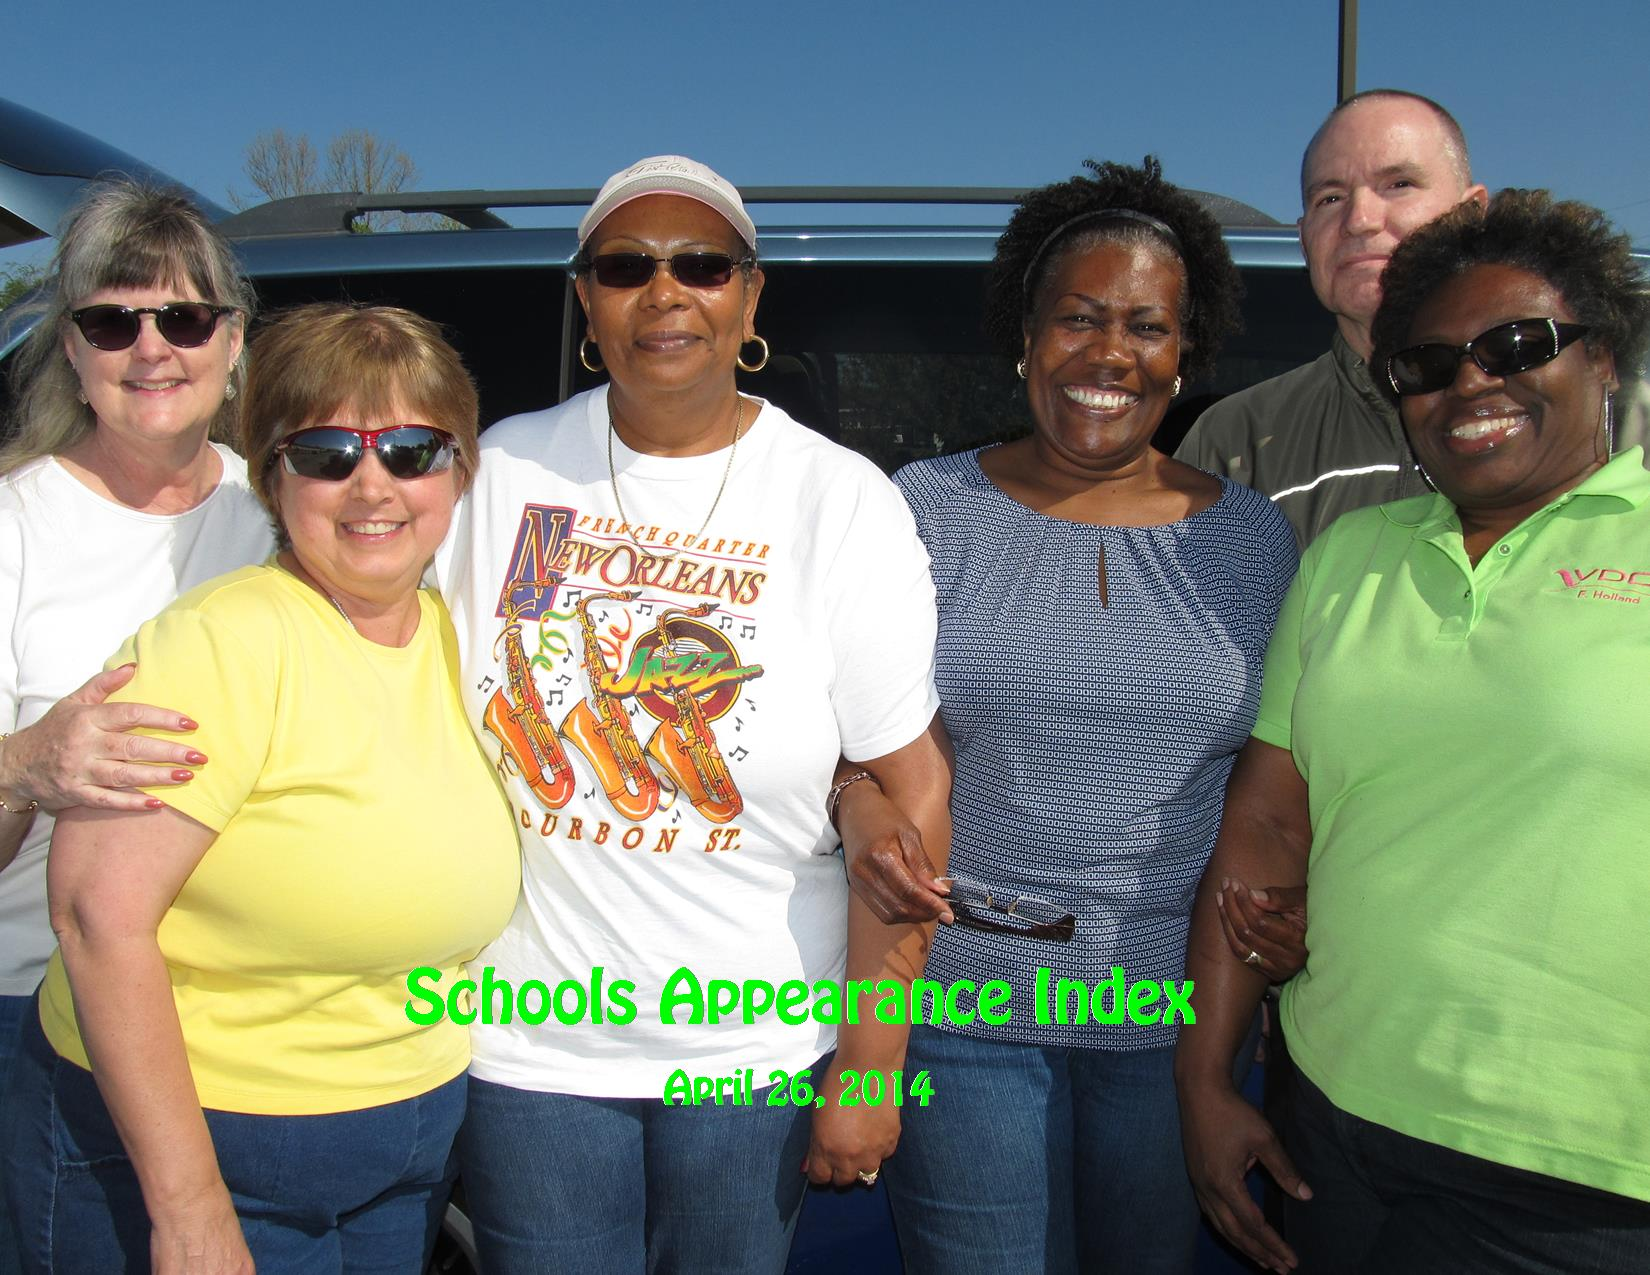 4-26-14 Schools Appearance Index